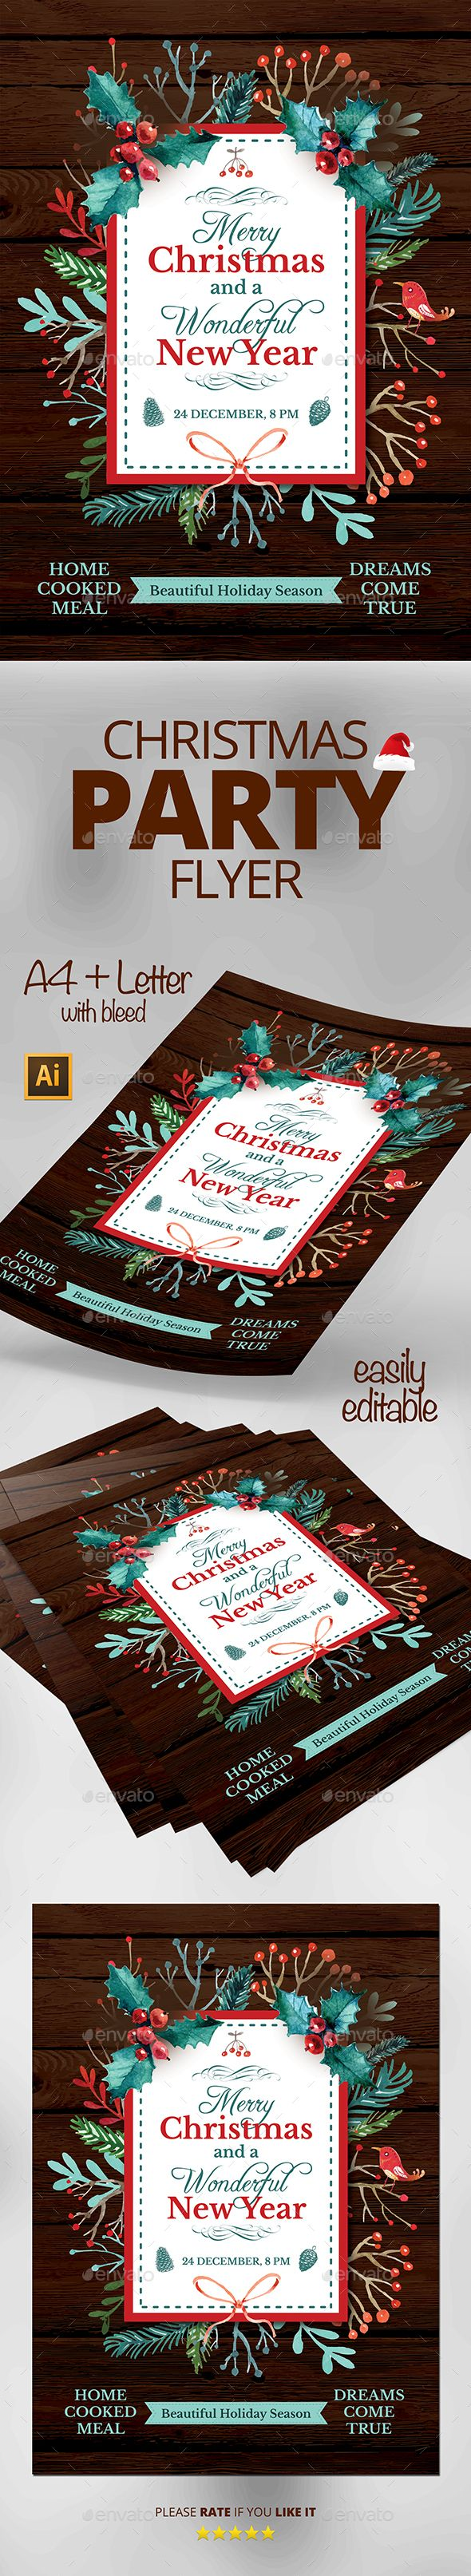 Christmas Flyer Template PSD #design Download: http://graphicriver.net/item/christmas-flyer/13616191?ref=ksioks